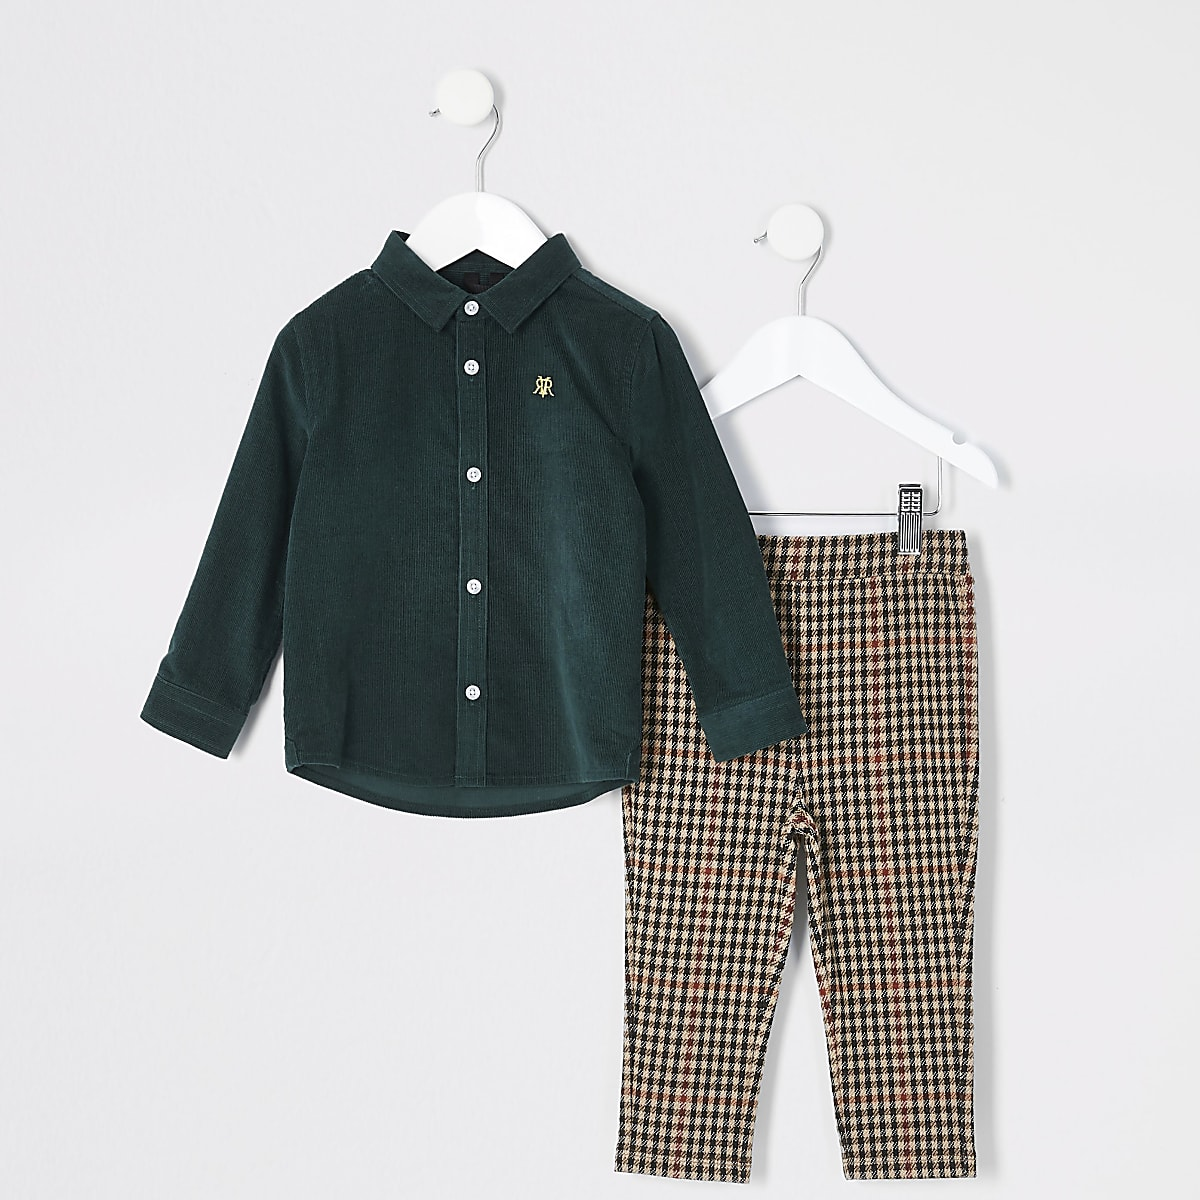 Mini boys dark green cord shirt outfit